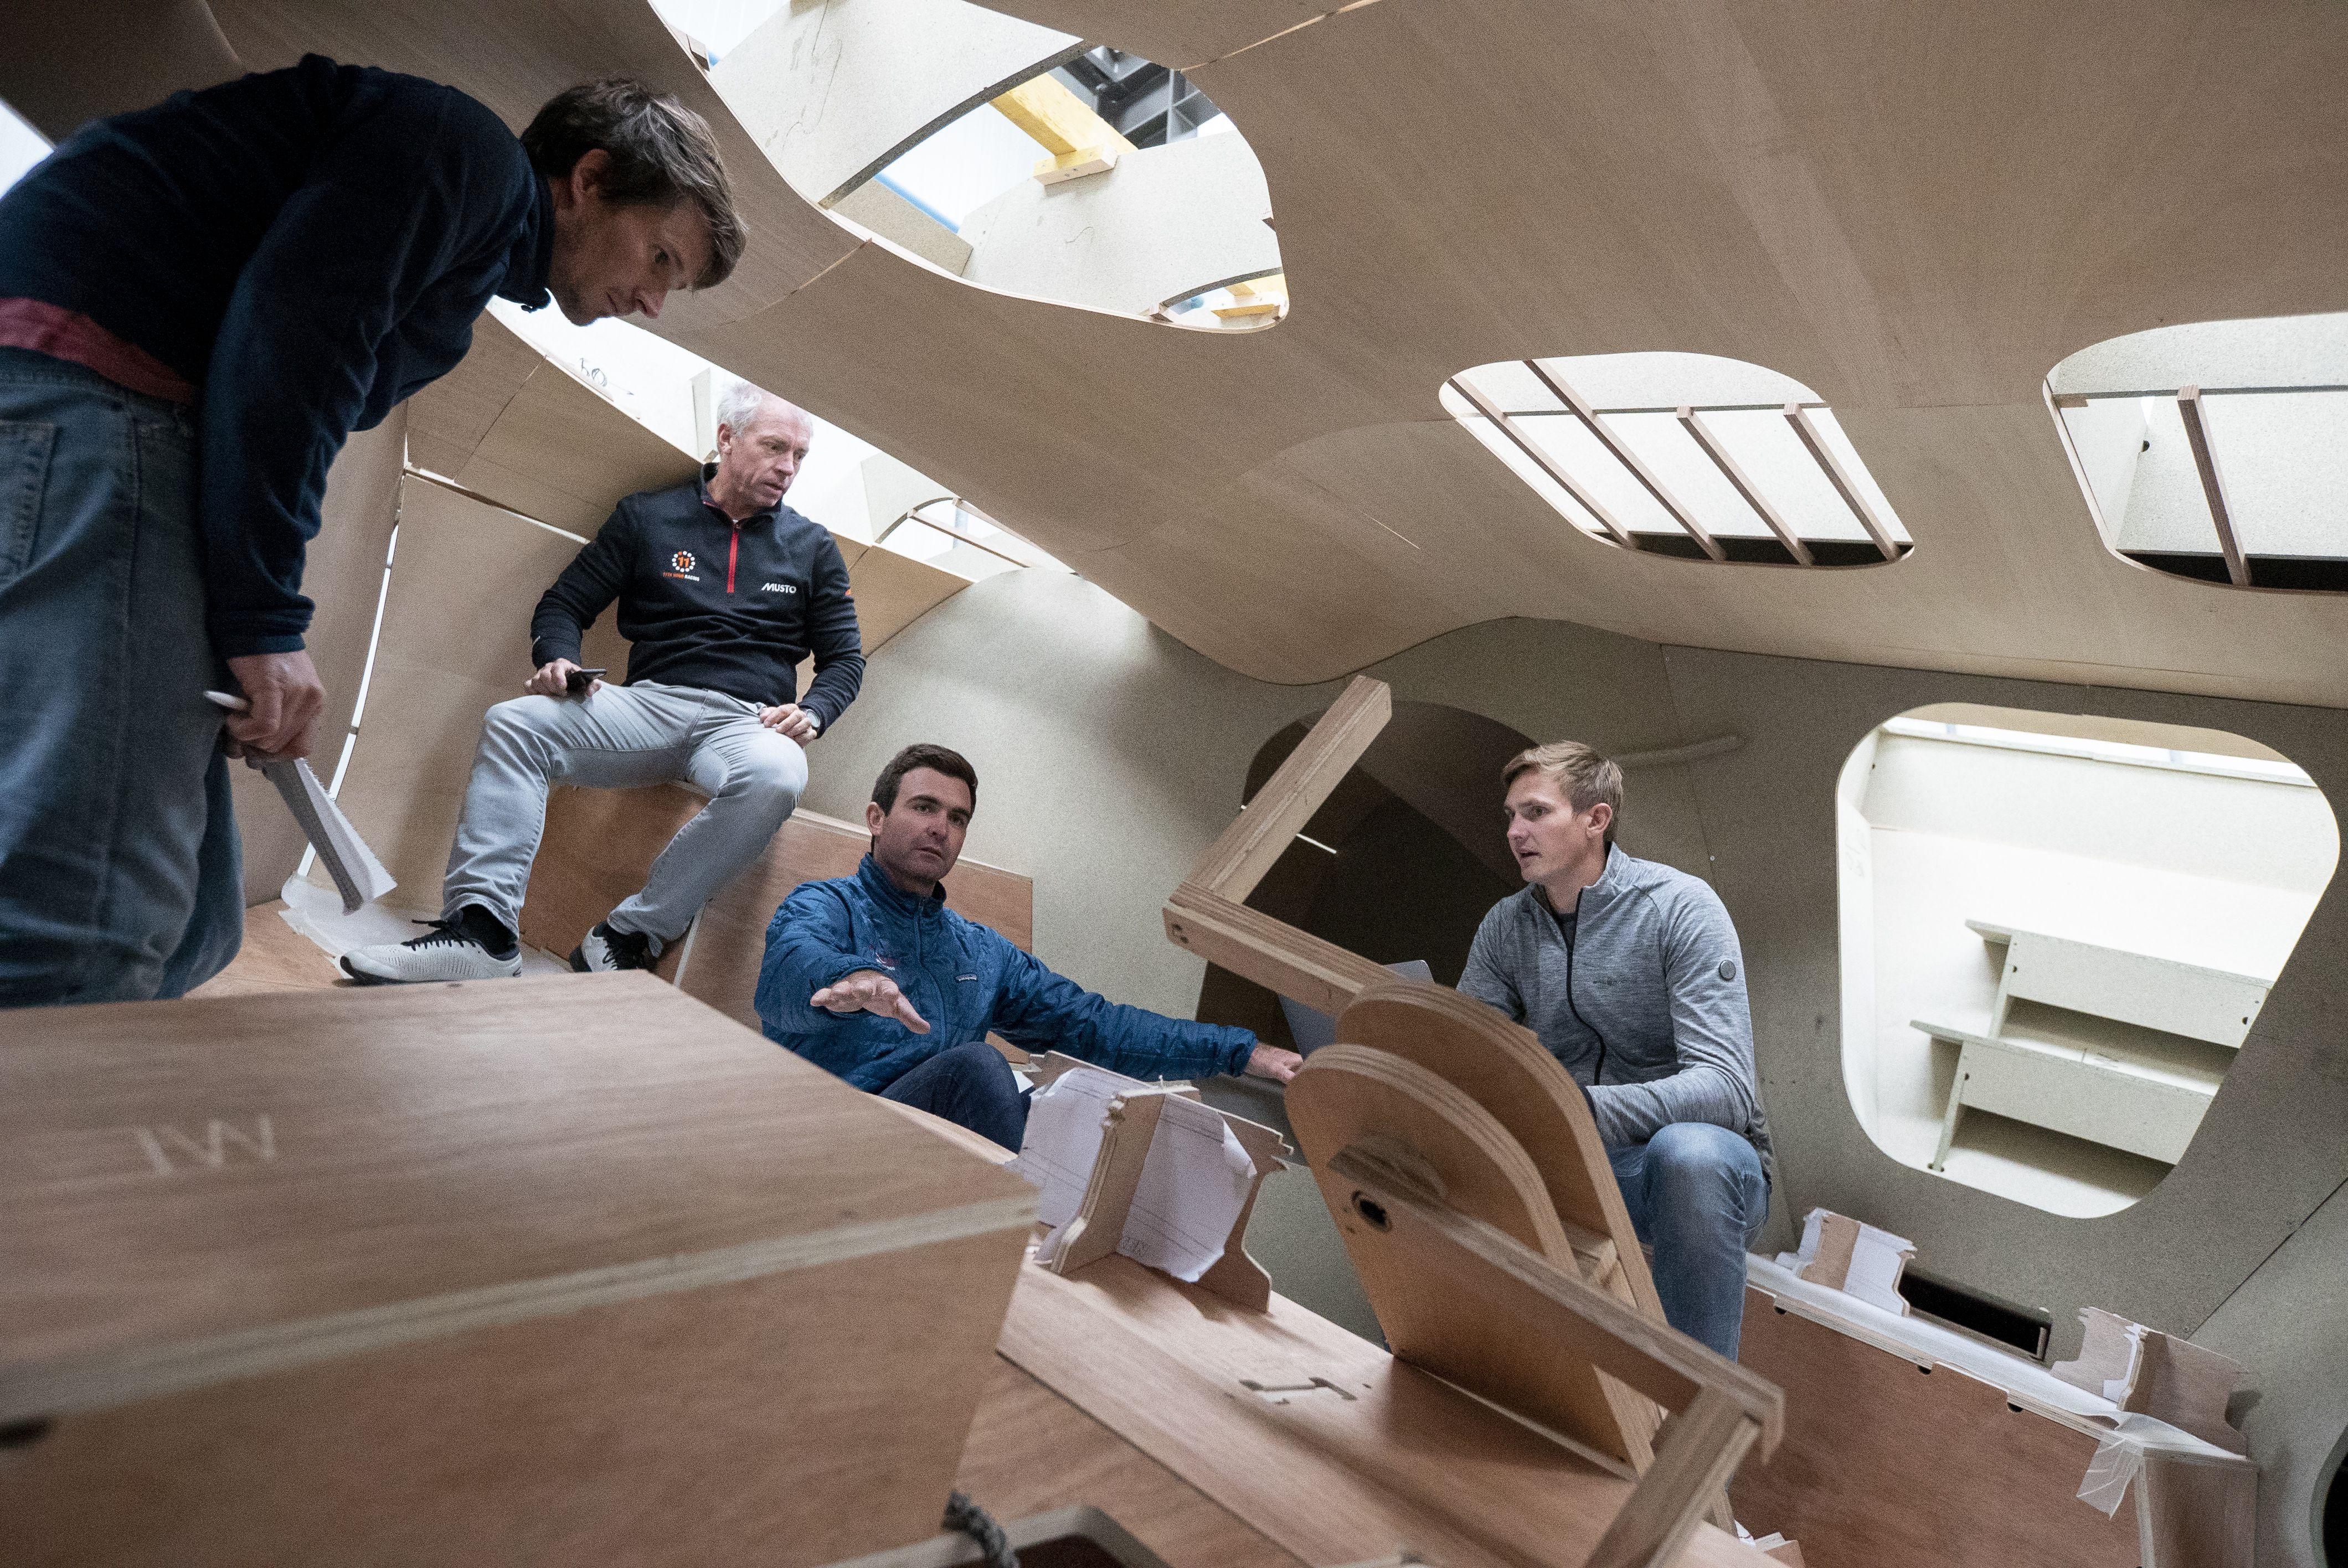 11th Hour Racing Team visit the cockpit mock-up for their new IMOCA 60 being build for The Ocean Race in December 2019.